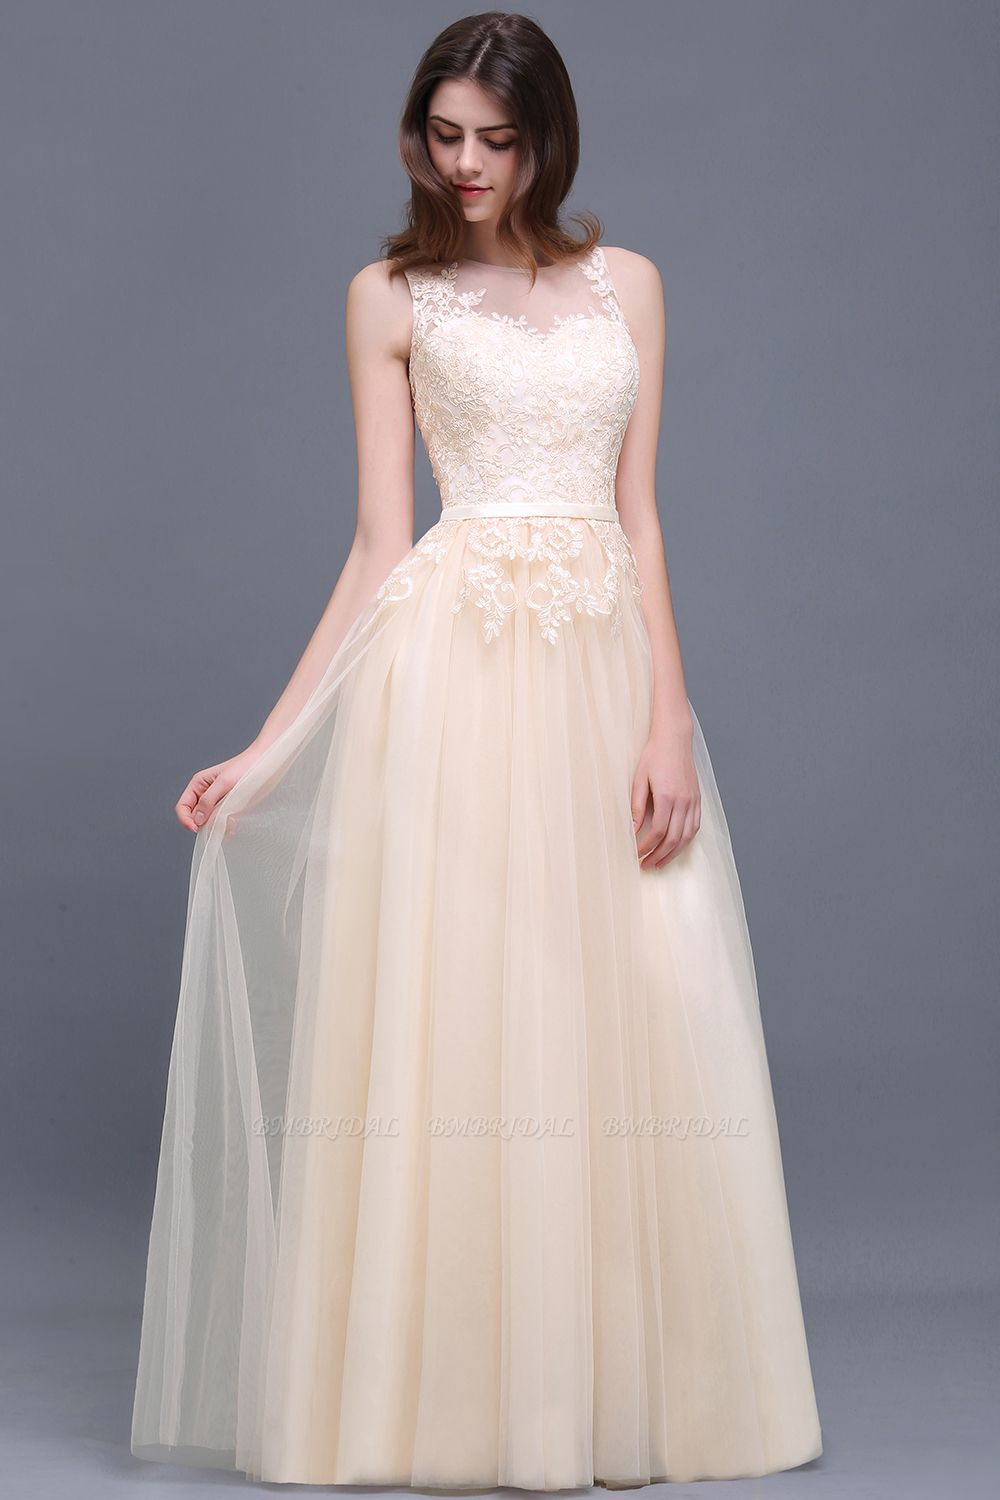 BMbridal Lace Sleeveless Long Tulle Prom Dress